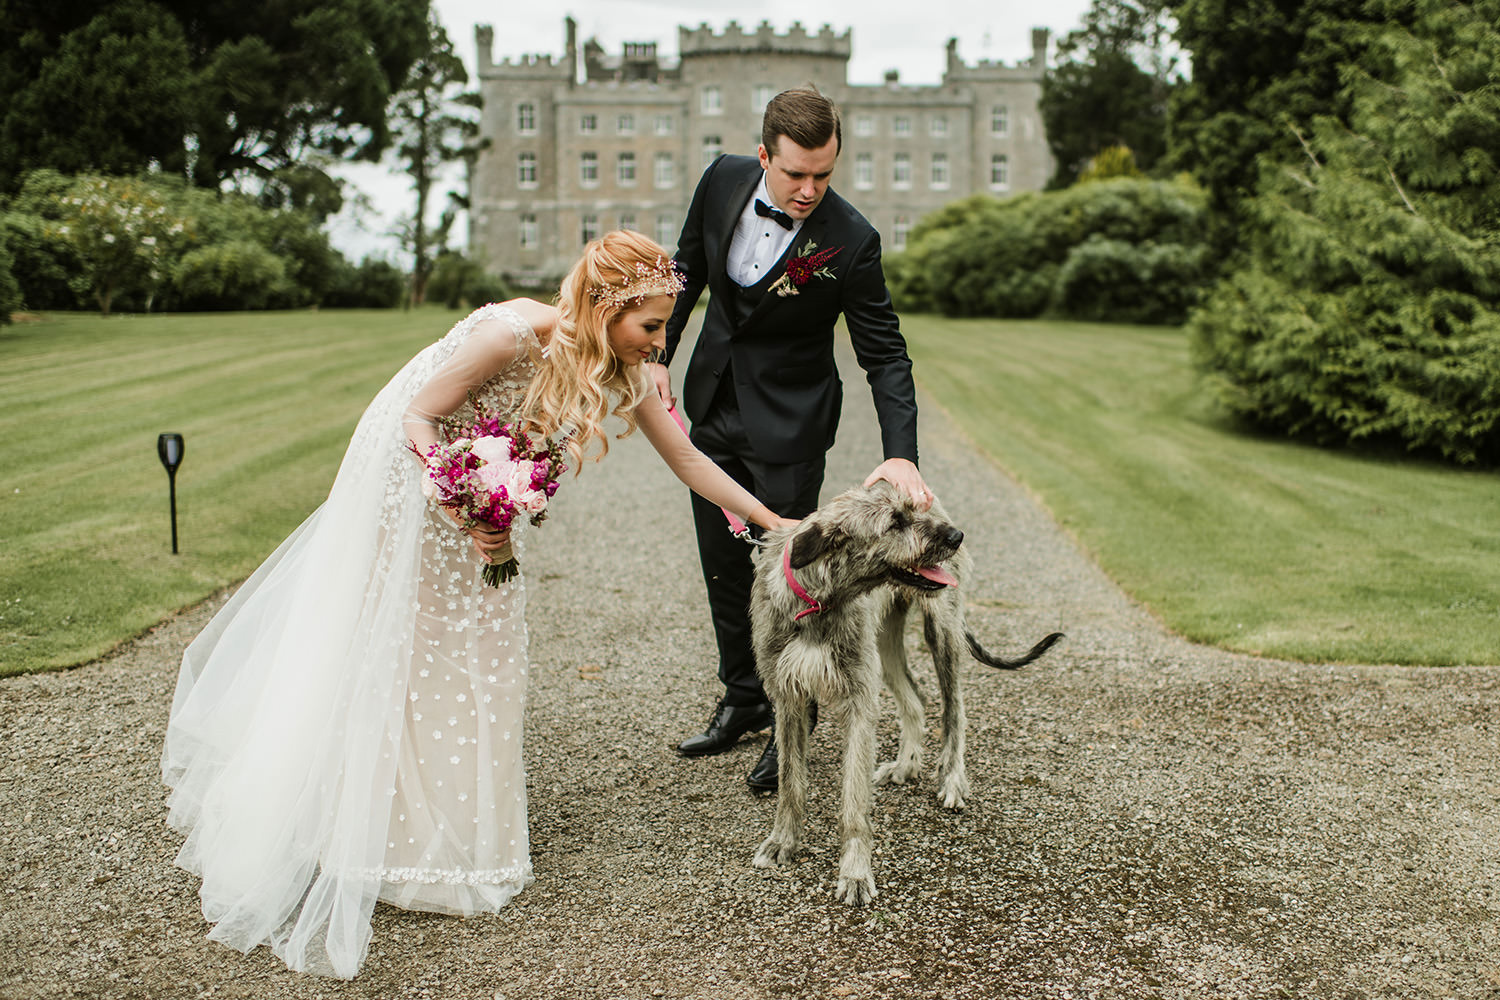 Wedding in Markree Castle co.Sligo 00053